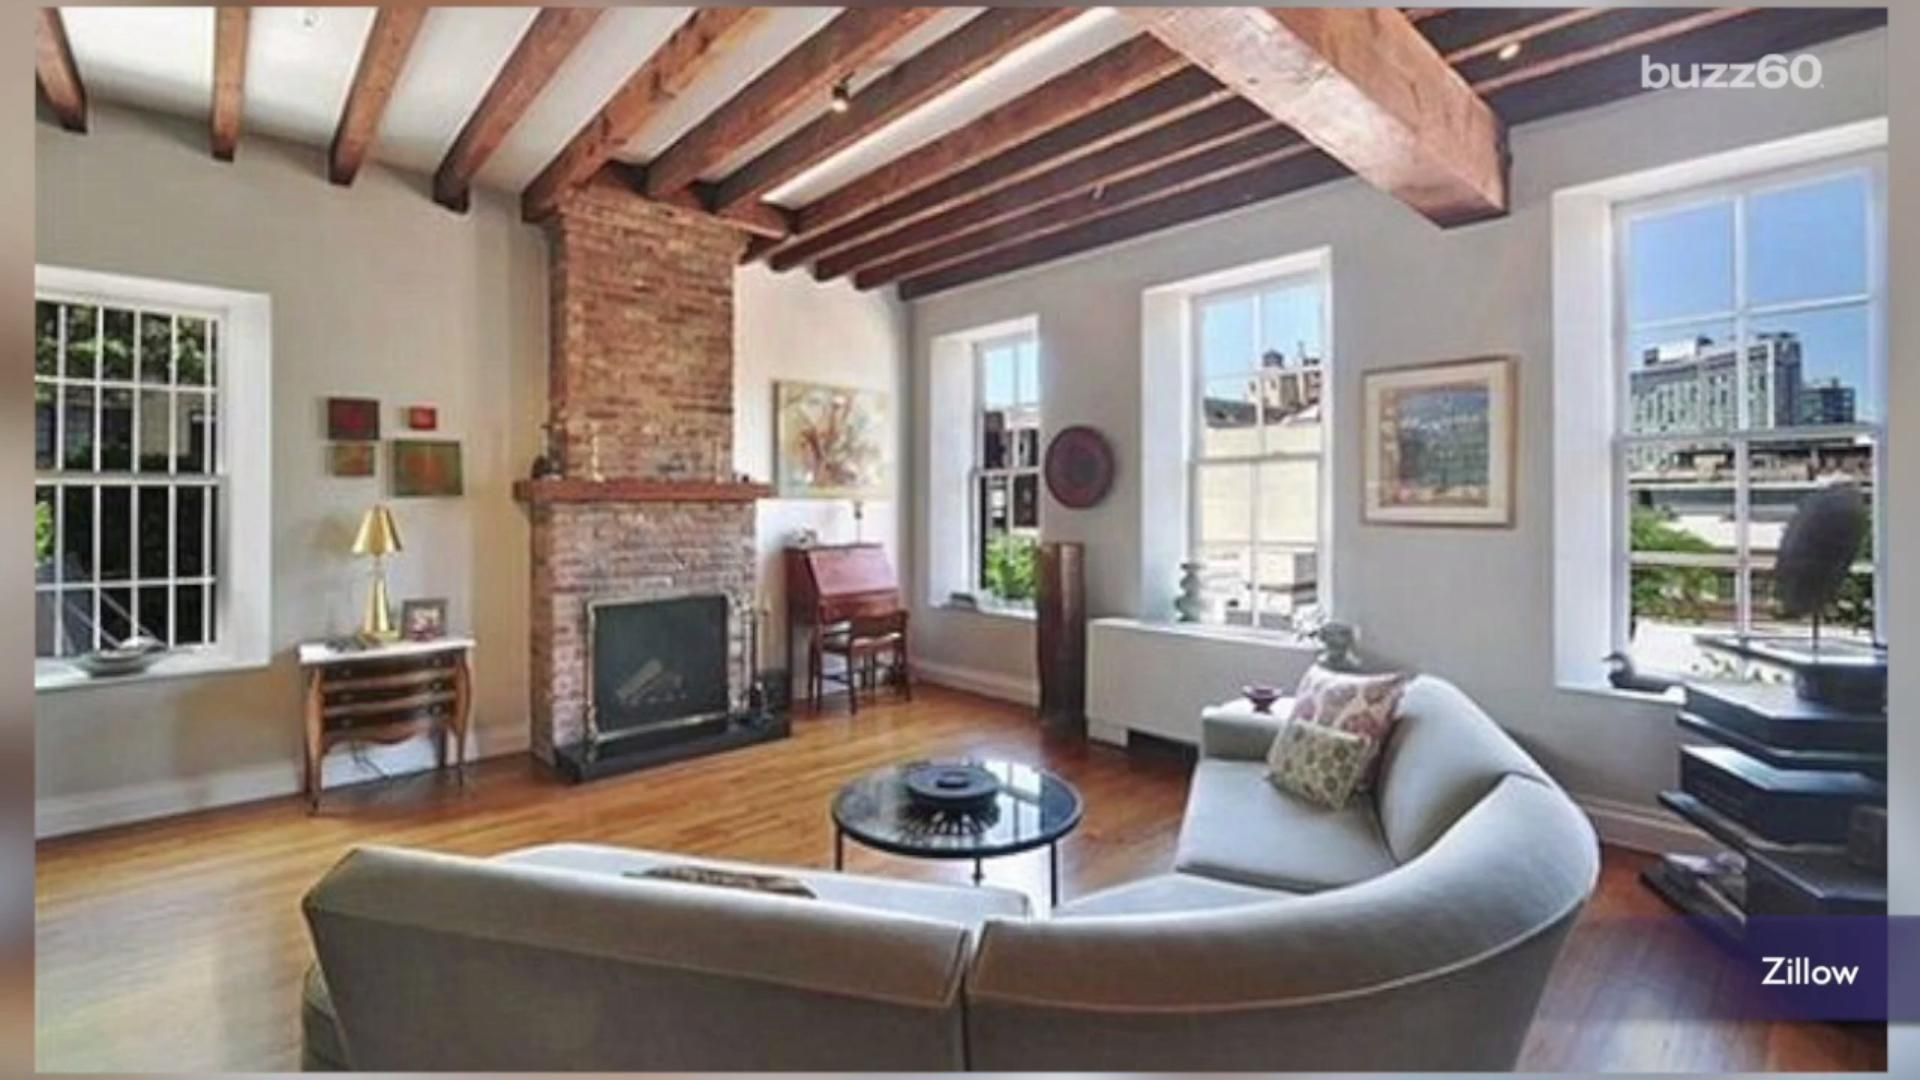 Luxury Condo Where Philip Seymour Hoffman Died is For Rent